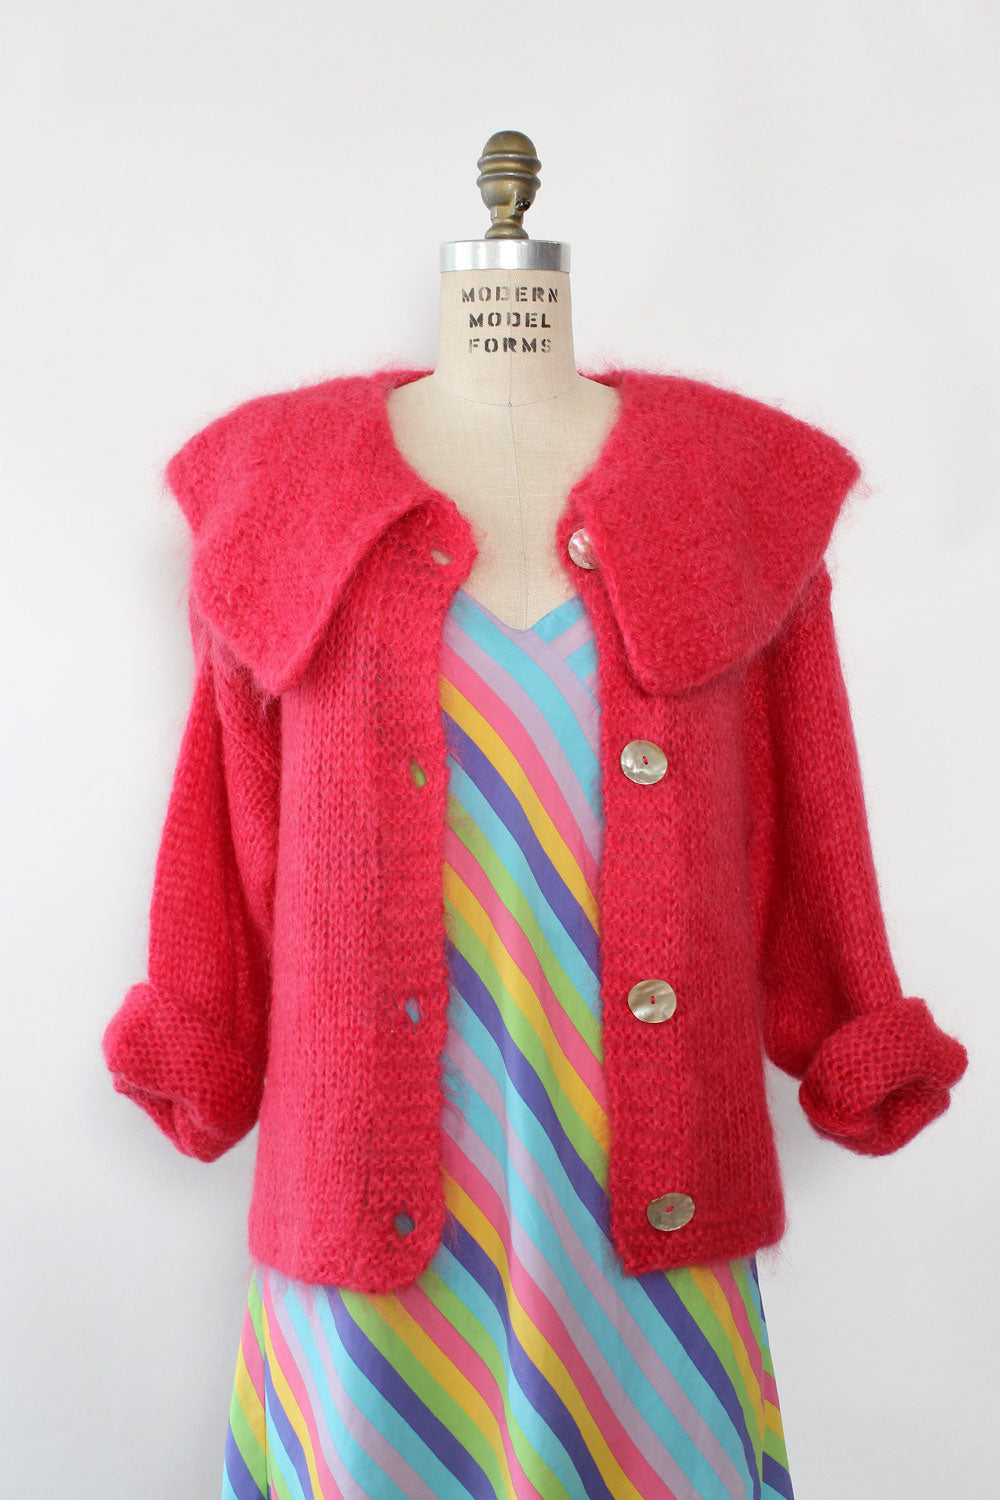 Chelsea Magenta Mohair Sweater S-L